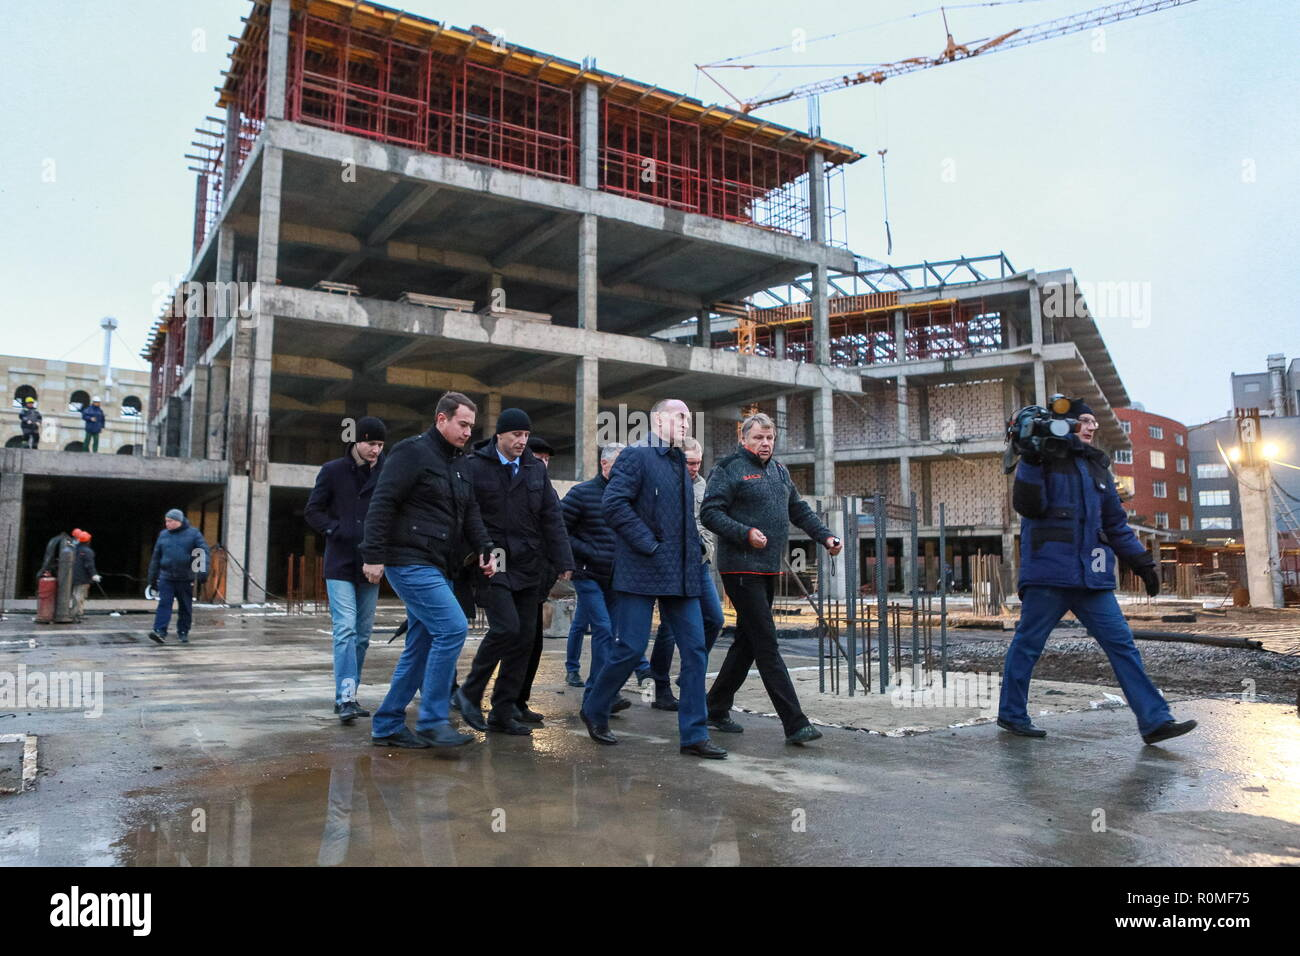 Chelyabinsk, Russia. 04th Nov, 2018. CHELYABINSK, RUSSIA - NOVEMBER 4, 2018: The Governor of Chelyabinsk Region Boris Dubrovsky (C) visits the construction site of the Taganai 2020 Congress Hall at Ulitsa Truda Street; in 2020, Chelyabinsk is going to host an SCO summit and a BRICS summit. Nail Fattakhov/TASS Credit: ITAR-TASS News Agency/Alamy Live News - Stock Image